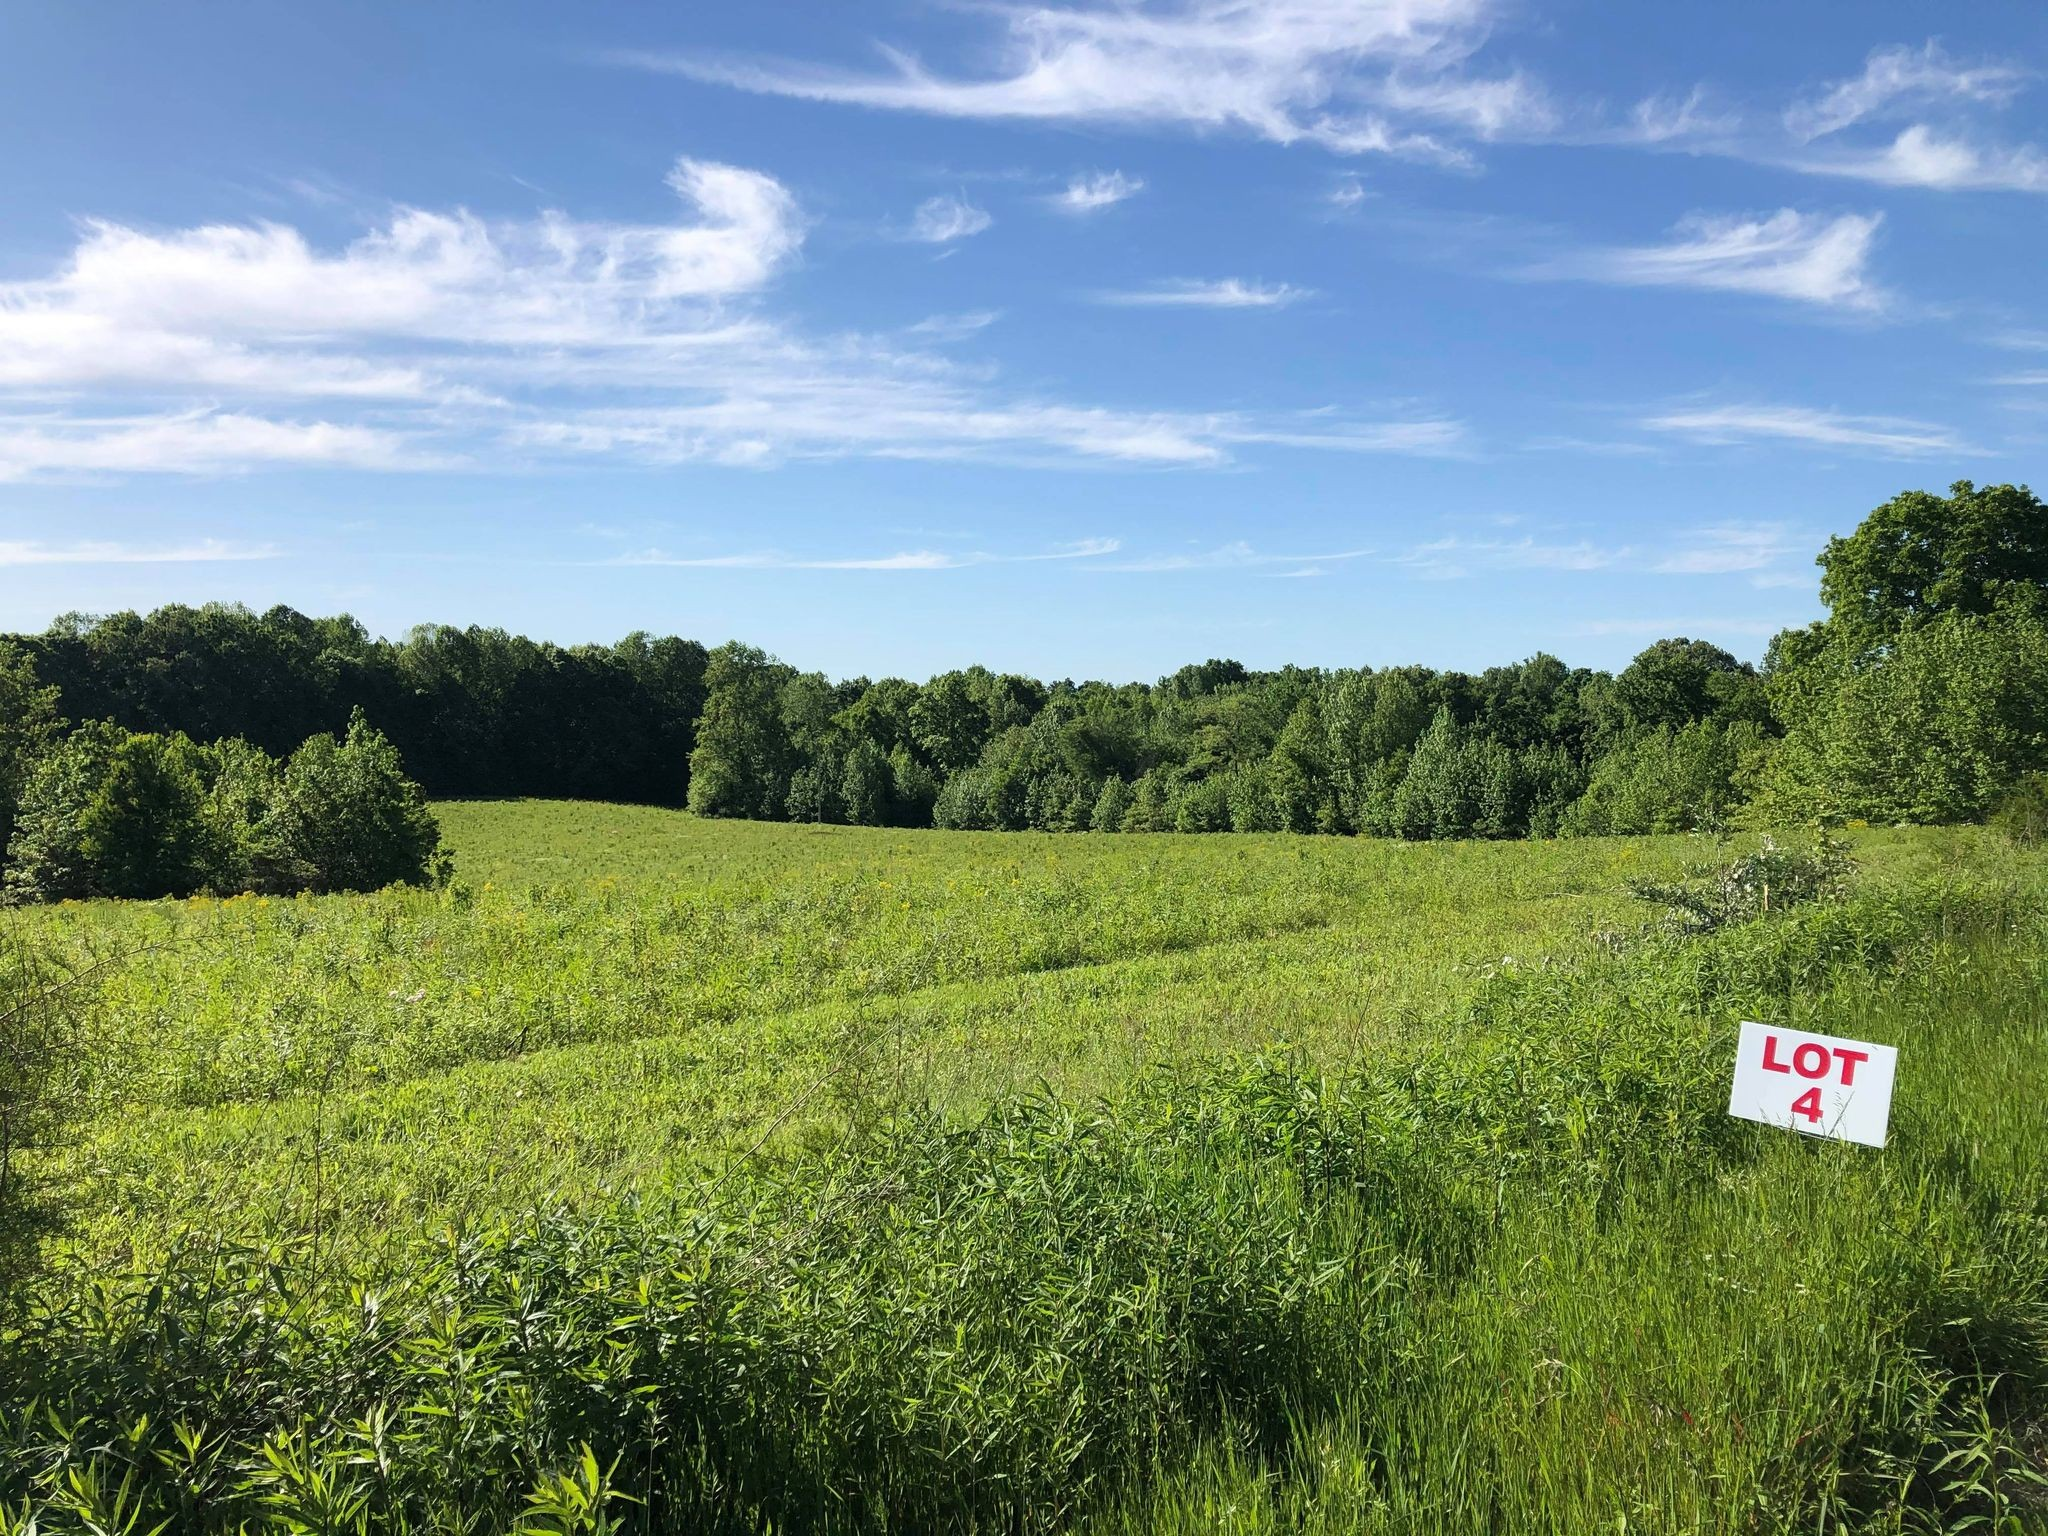 RARE FIND*5.1 Beautiful Acres In Sumner County Ready To Build Your Dream Home!  0 Claypoole Road Tract 4, Bethpage, TN.  37022